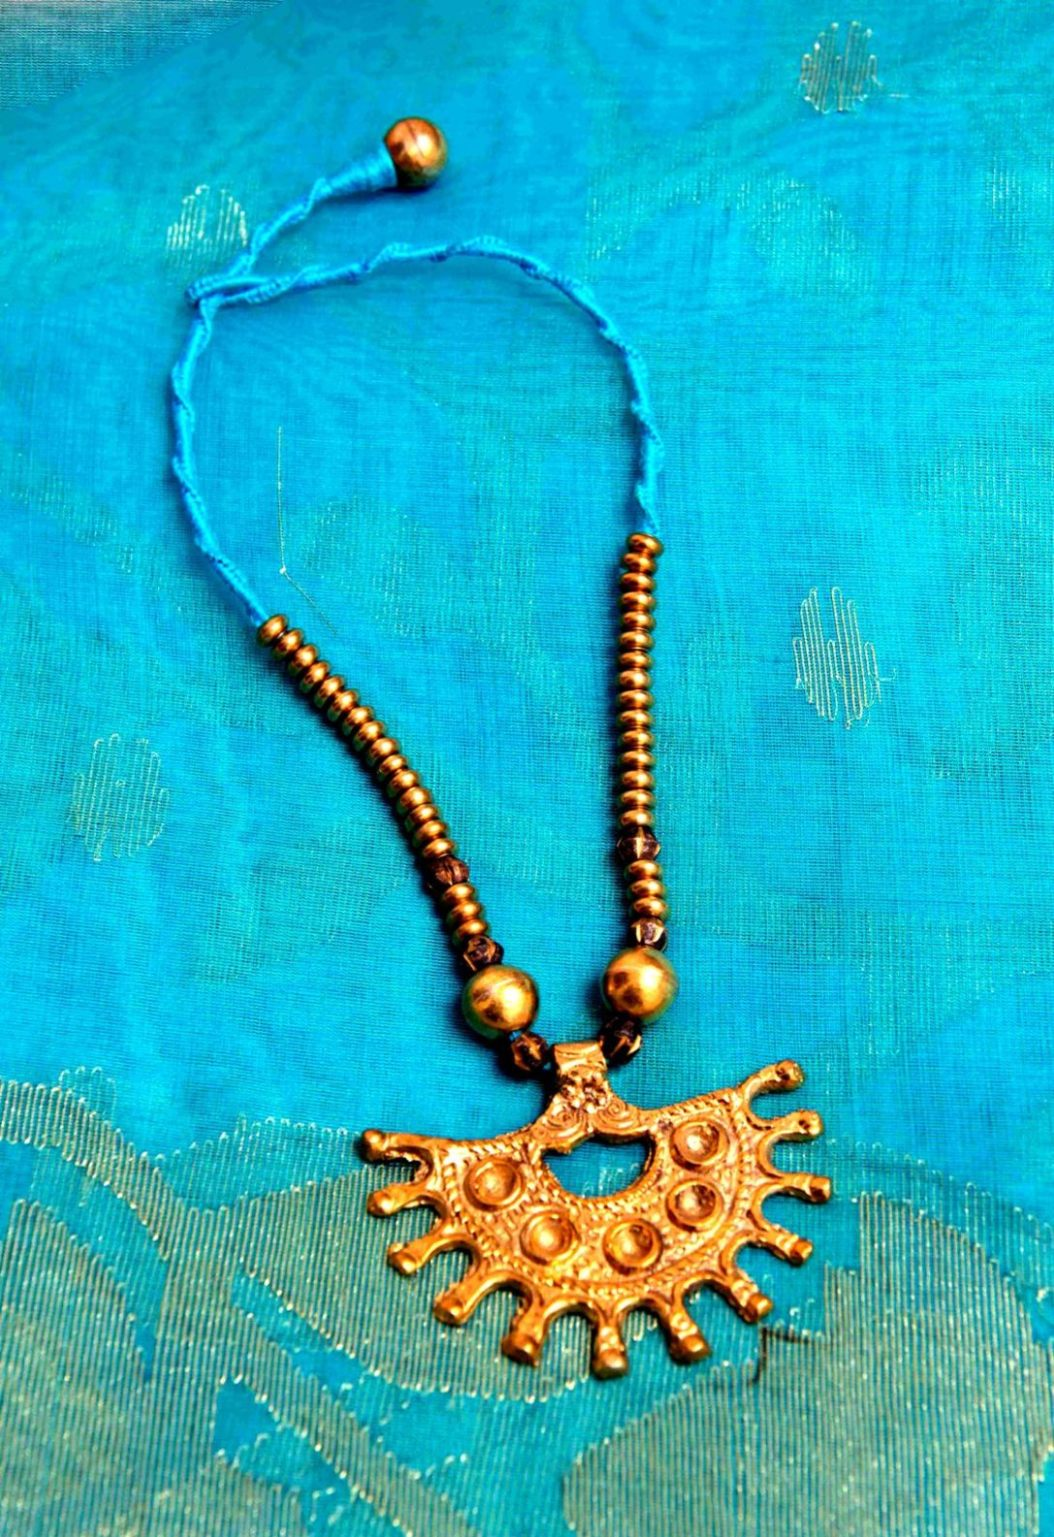 Blue and Gold ArdhChandra Dokra Neckpiece